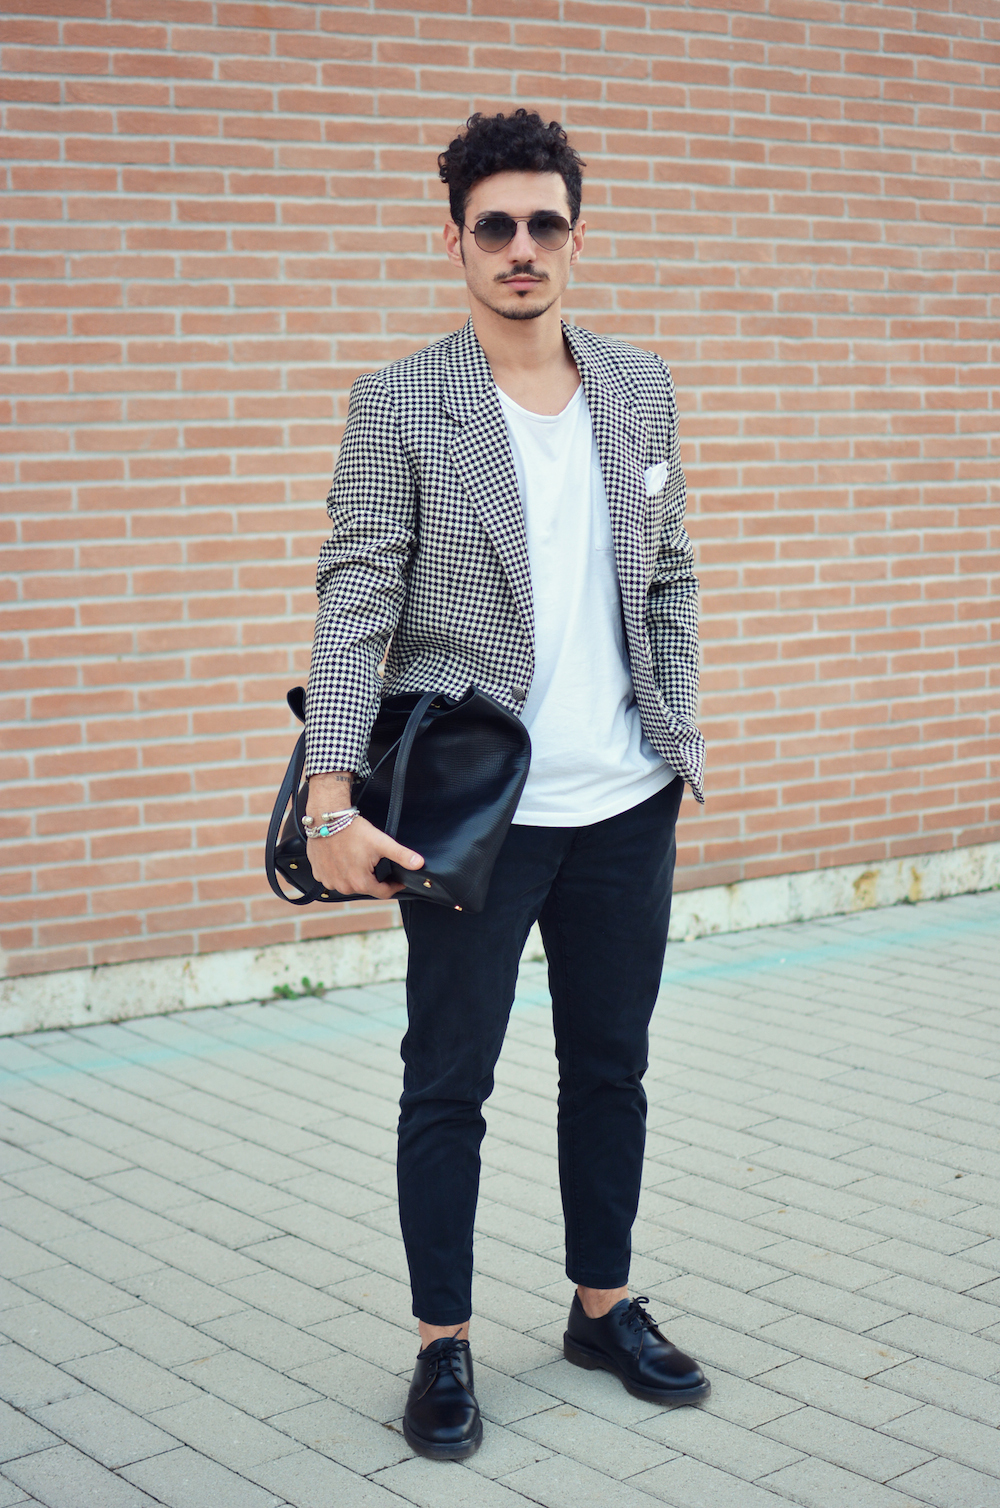 Black t shirt navy pants - Wear A Black And White Houndstooth Blazer Jacket With Dark Blue Chino Pants For Your Nine